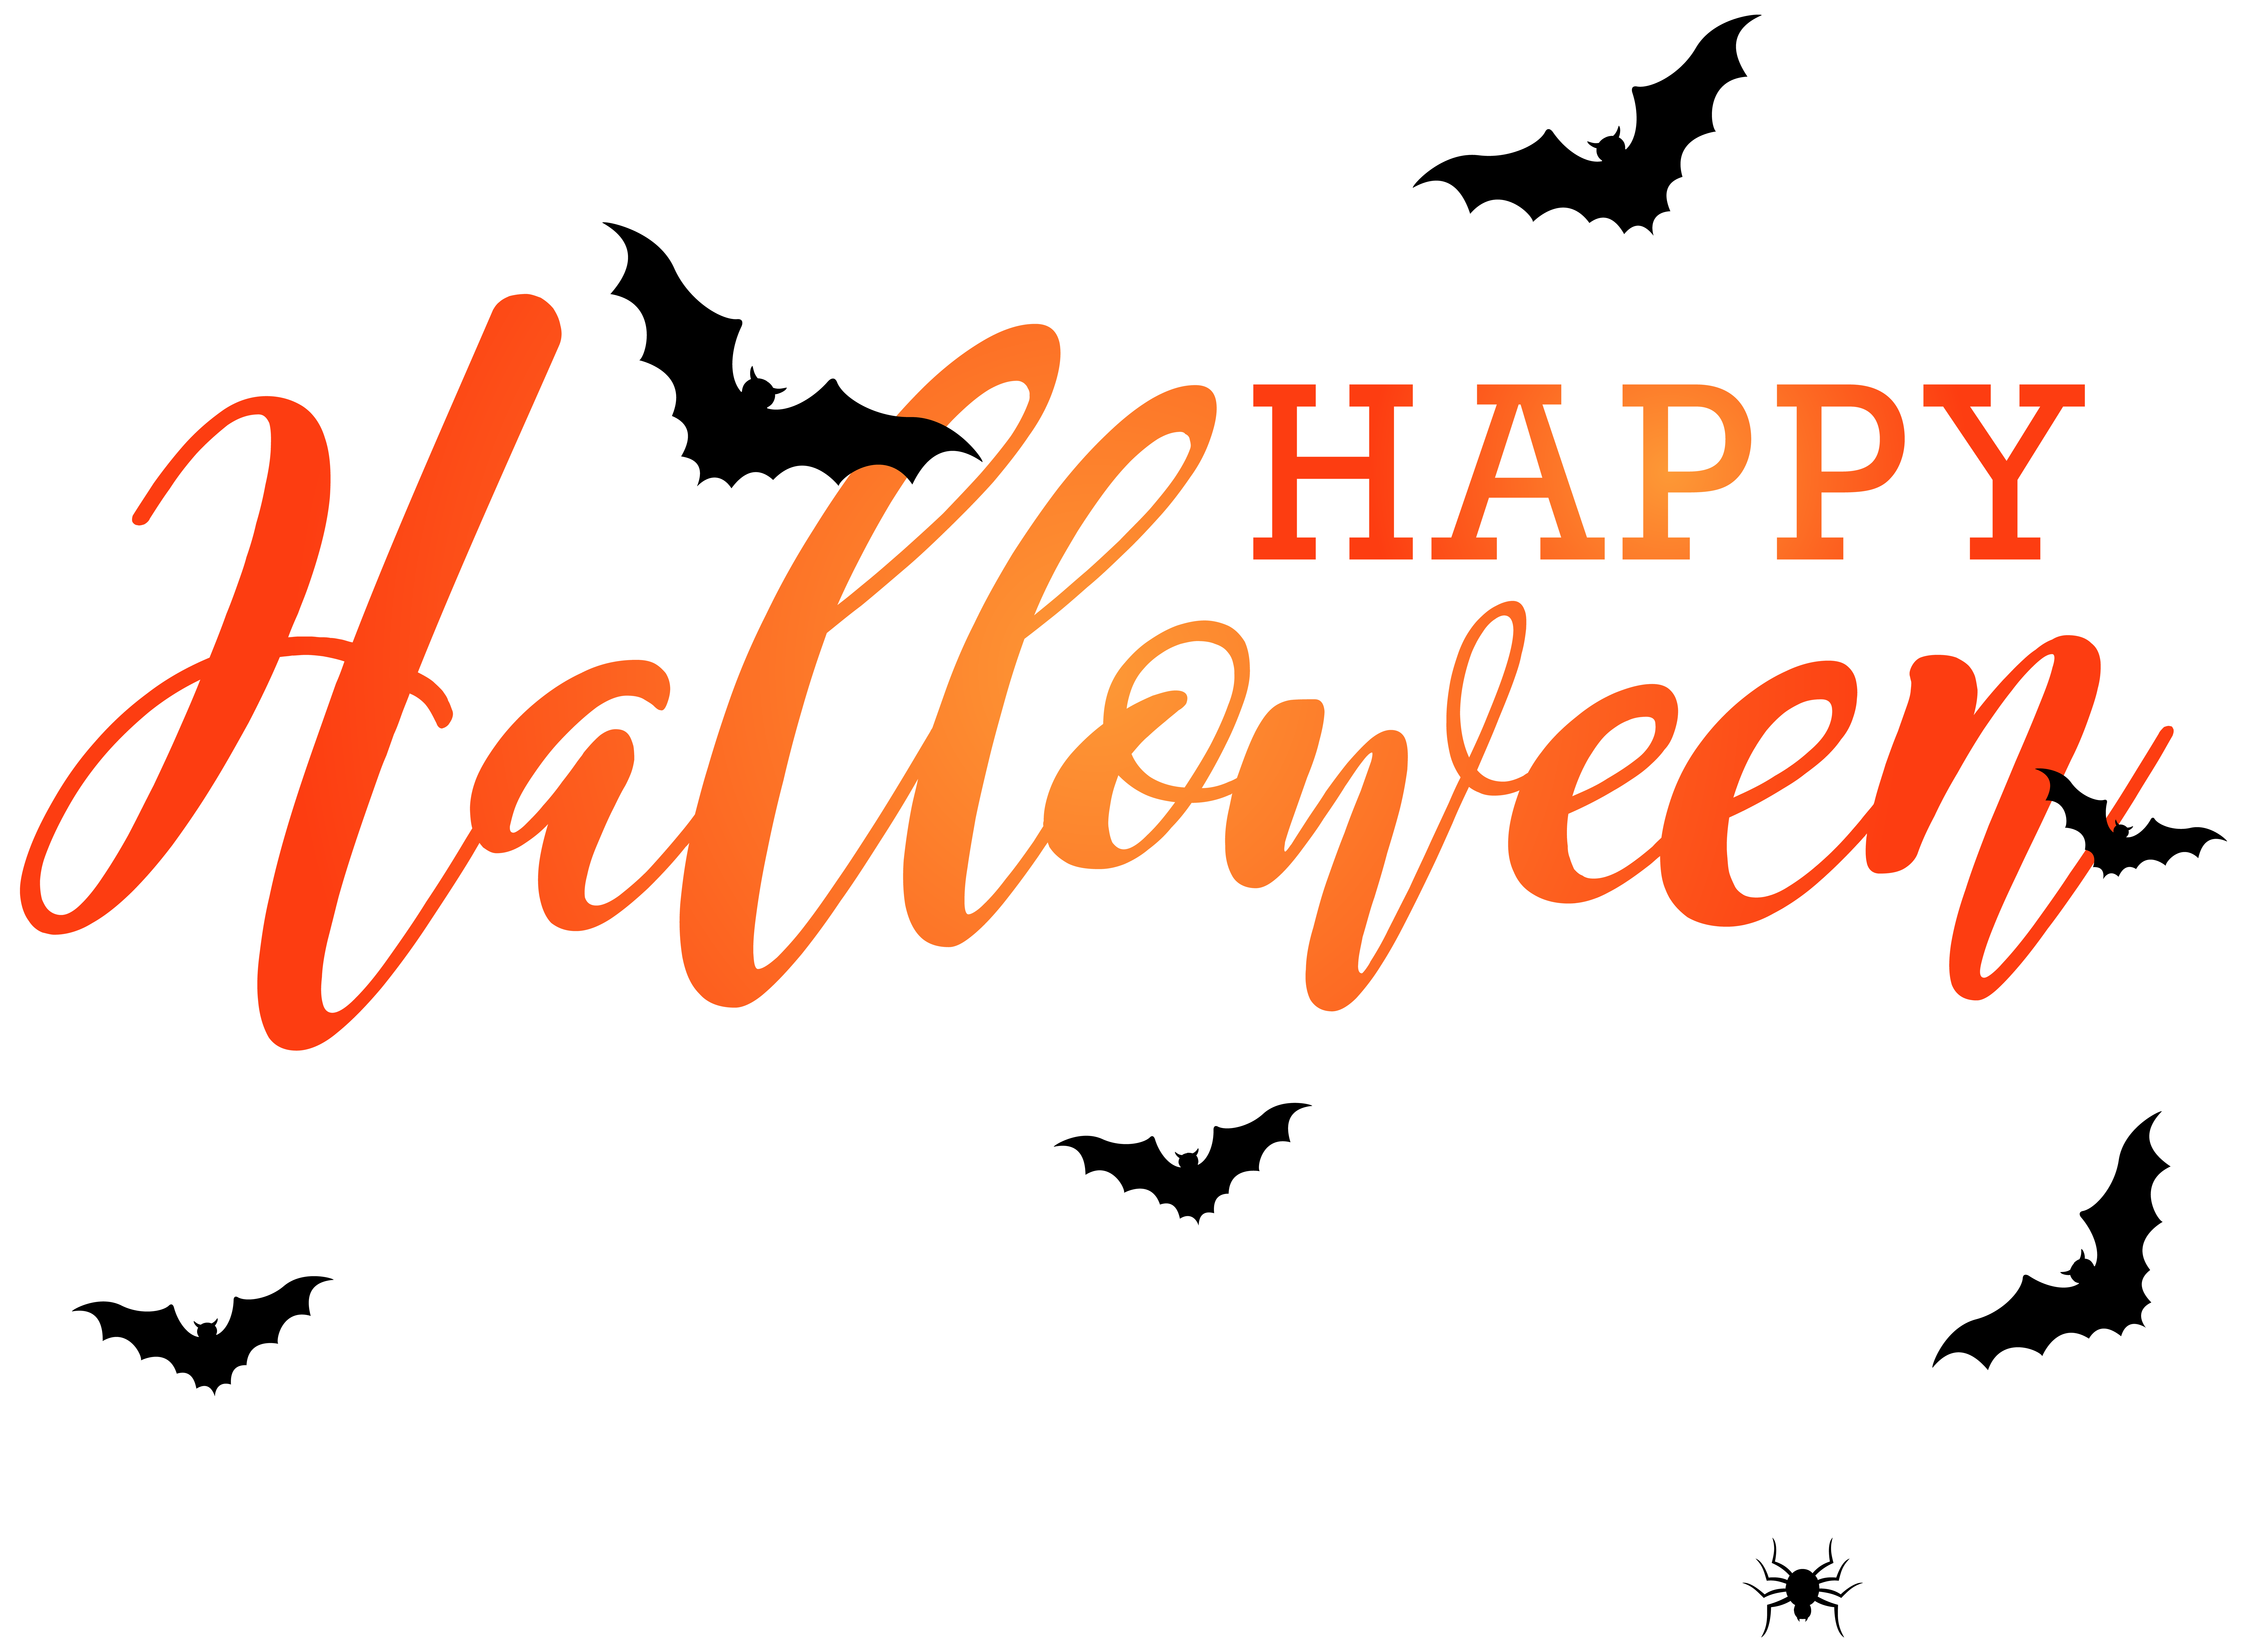 Happy Halloween with Bats PNG Clip Art Image.